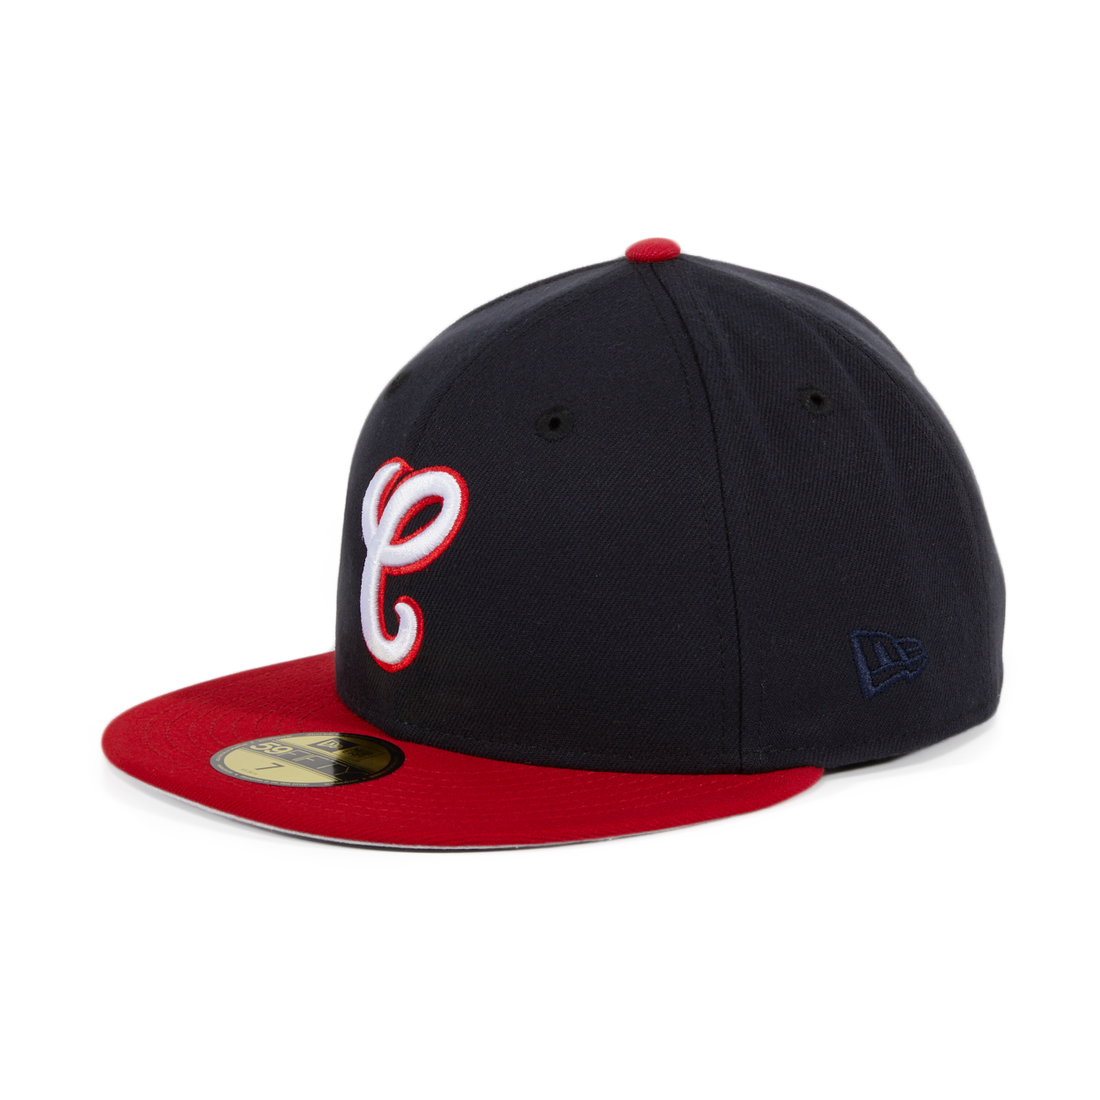 Exclusive New Era 59Fifty Chicago White Sox 1987 Hat - 2T Navy, Red